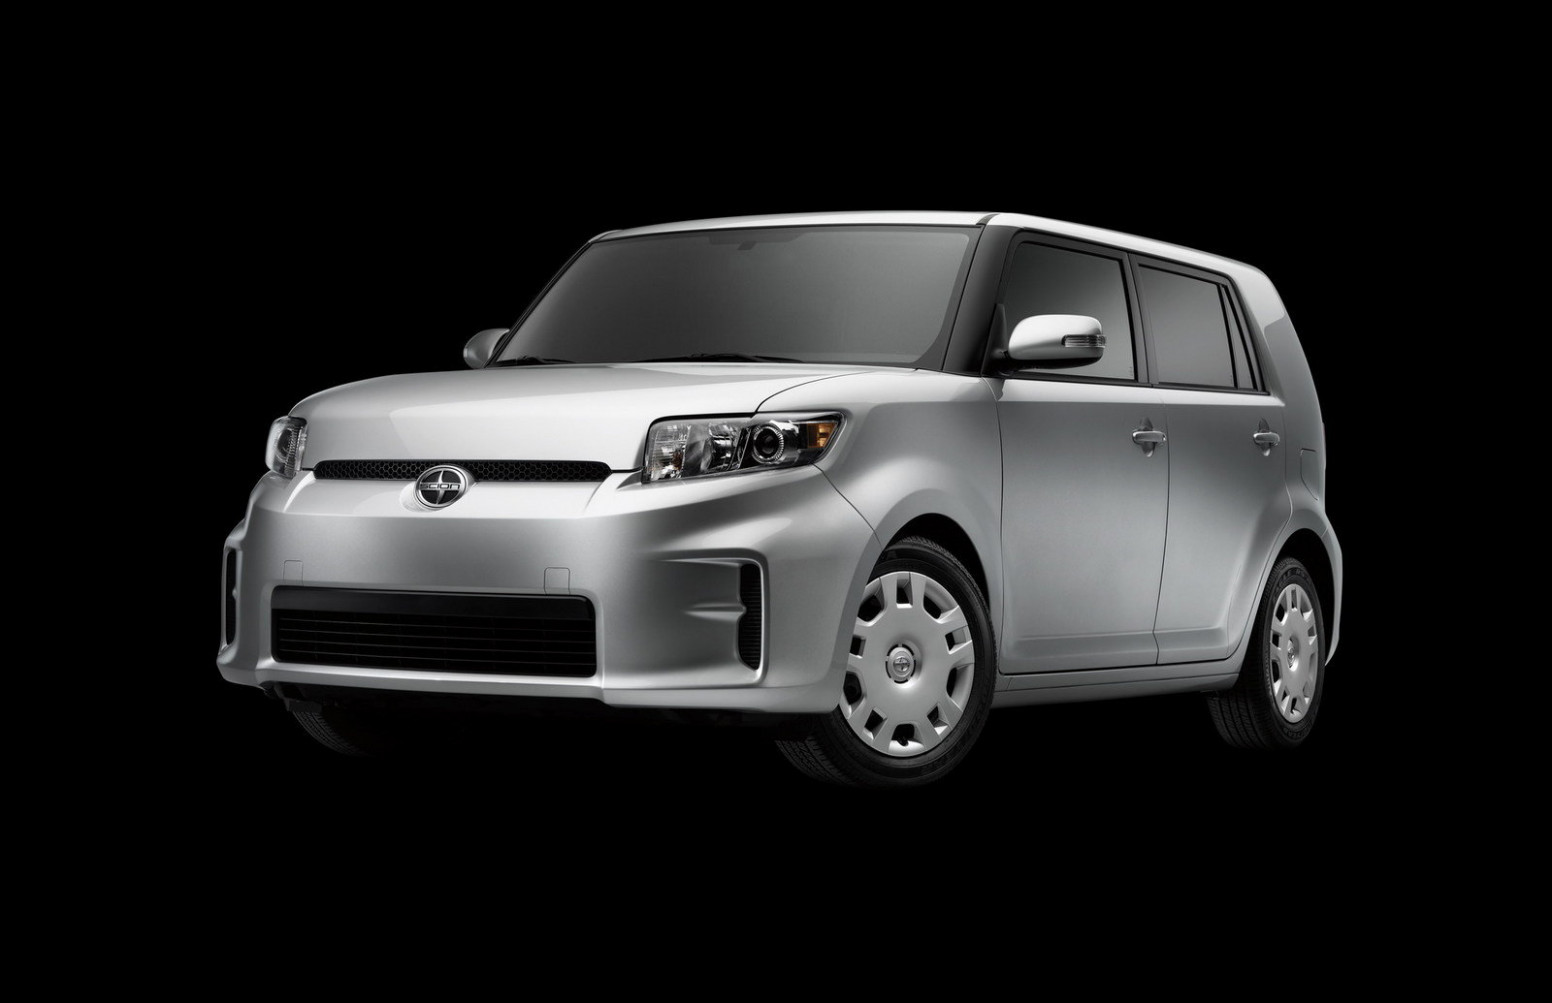 Redesign and Concept 2022 Scion XD